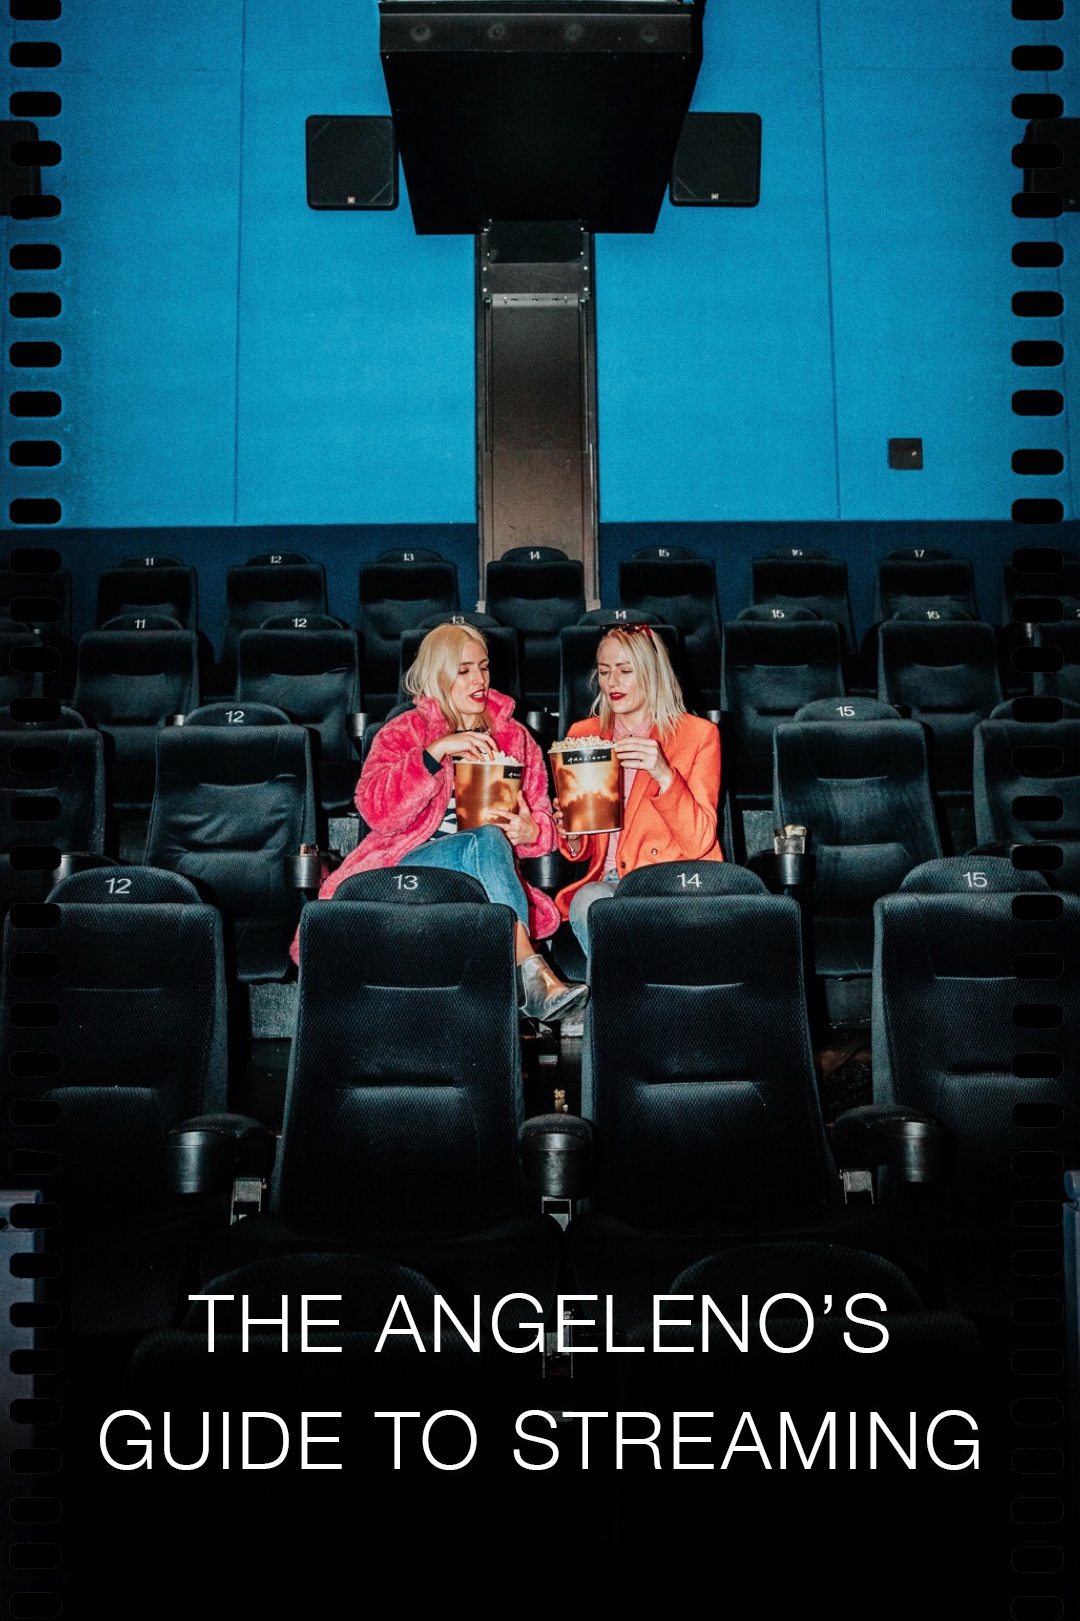 THE ANGELENO'S GUIDE TO STREAMING